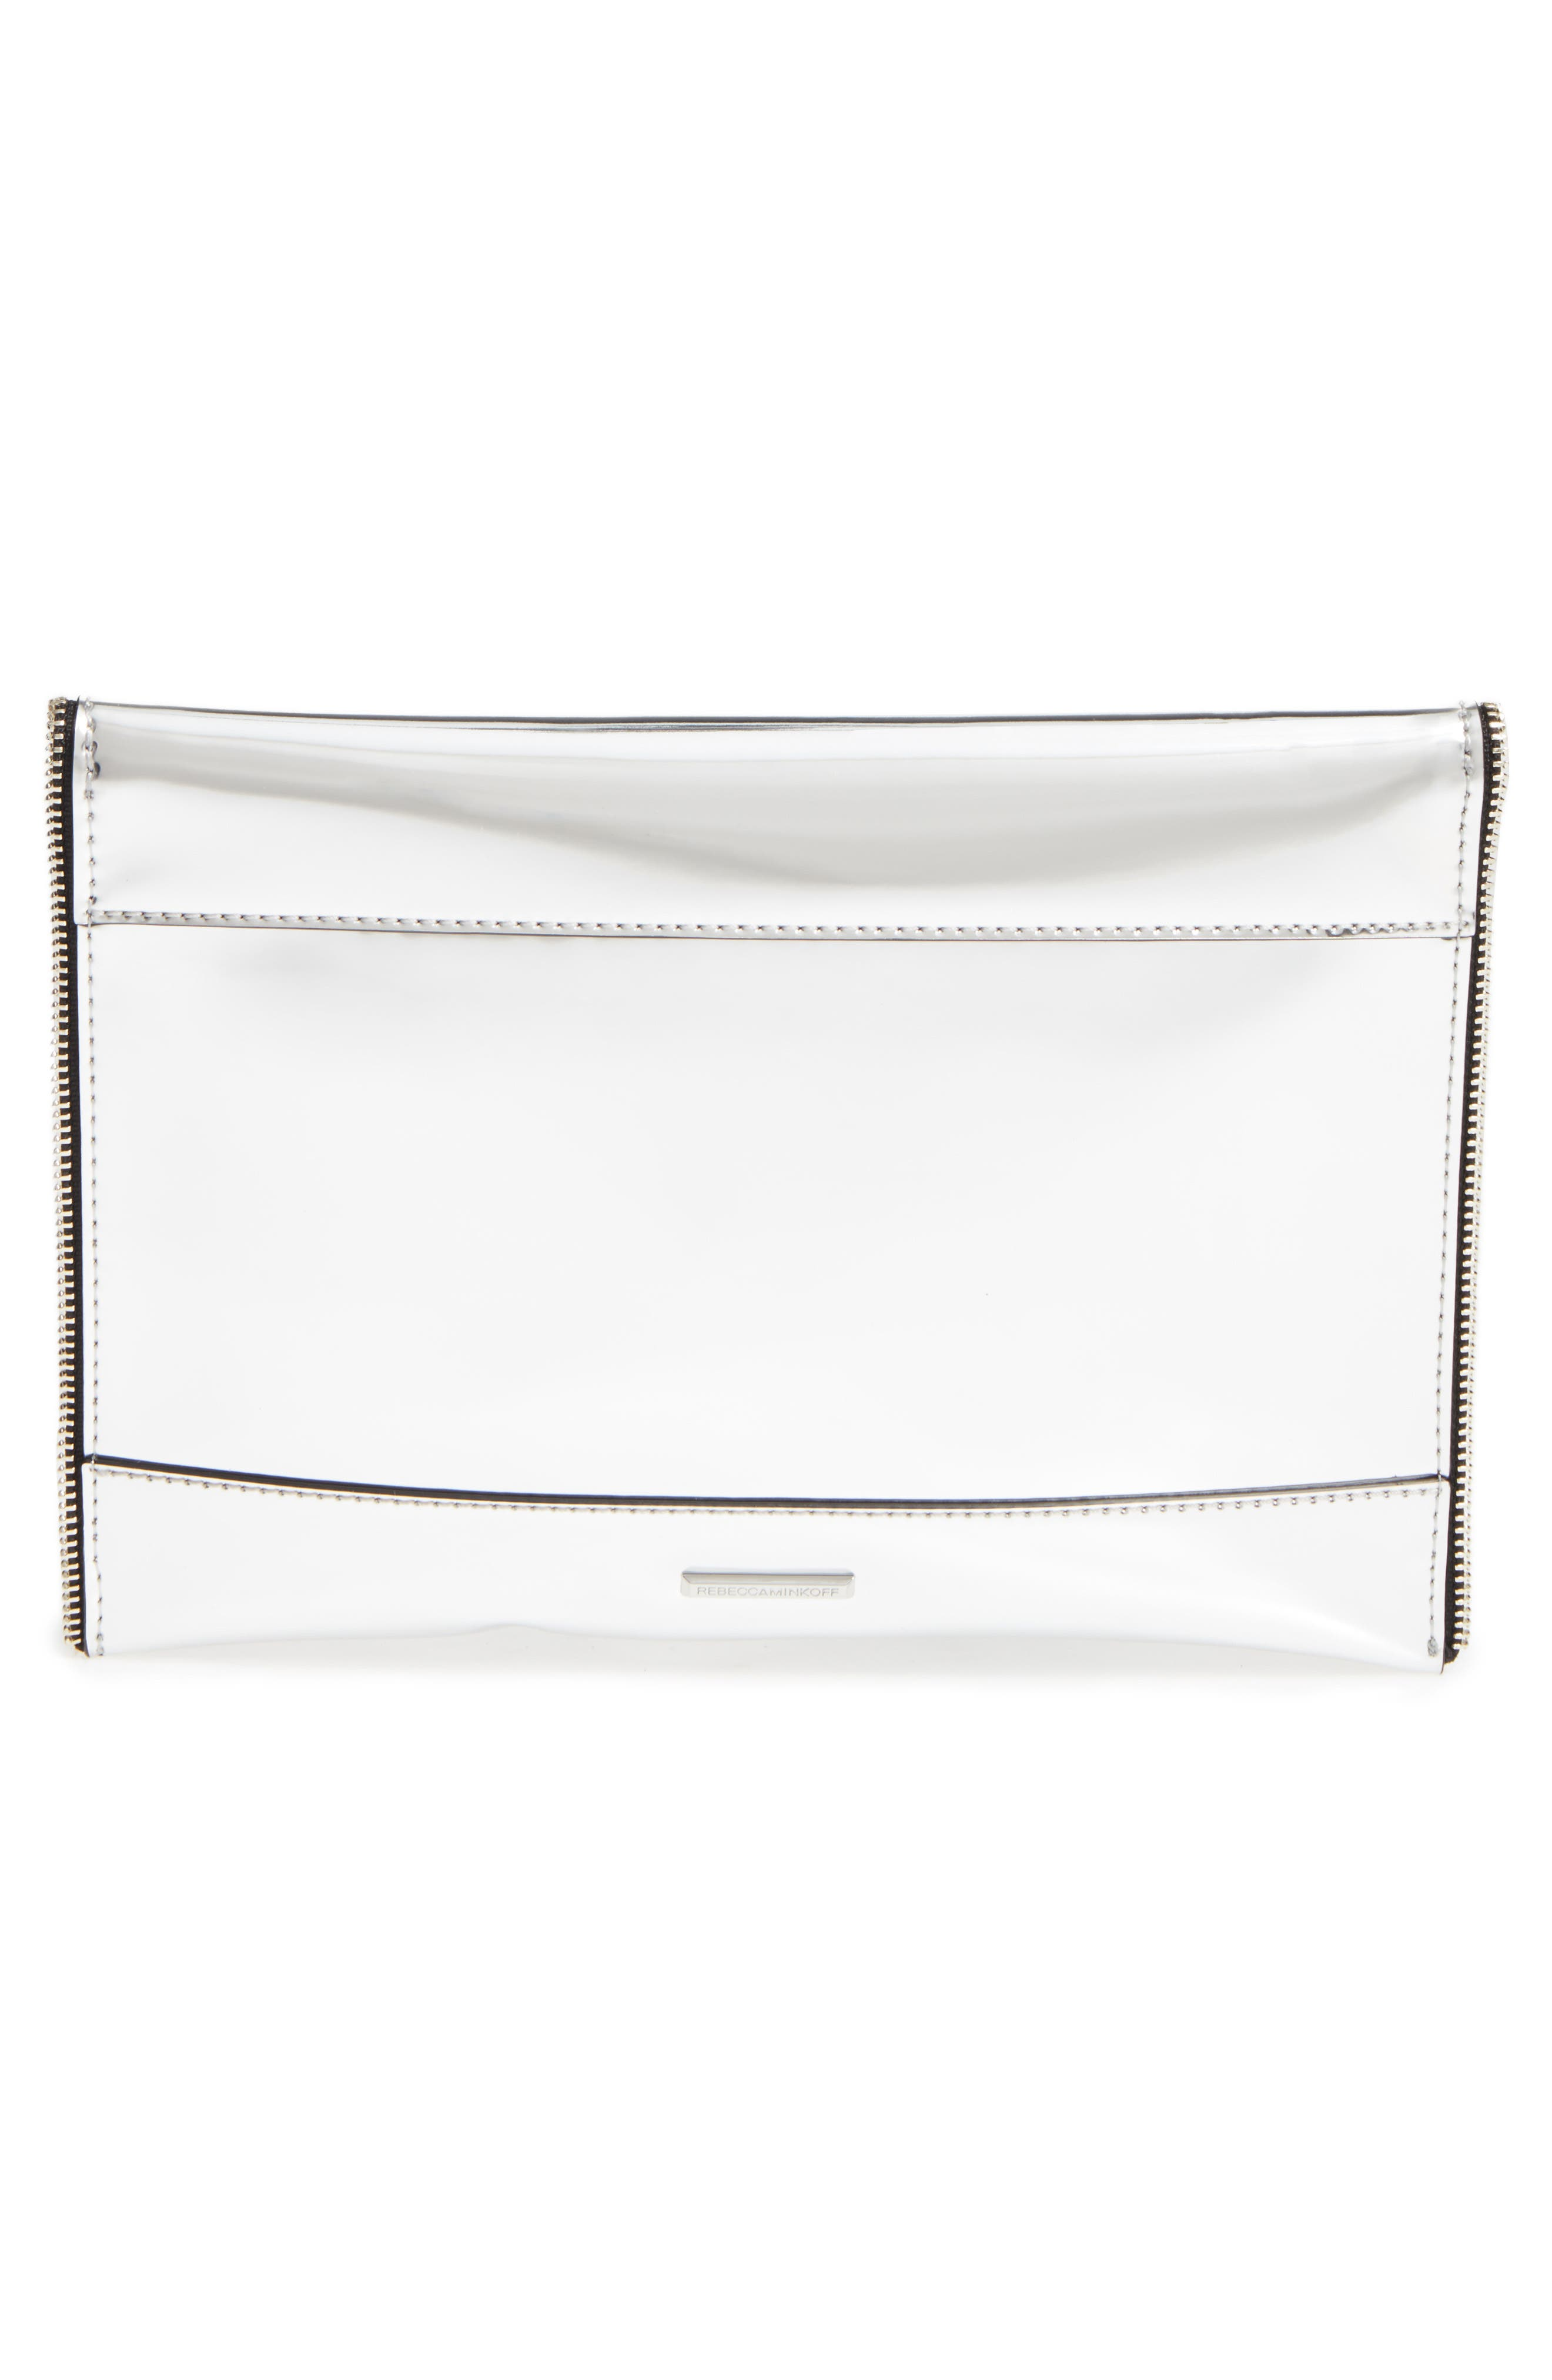 Alternate Image 3  - Rebecca Minkoff Mirrored Leo Clutch